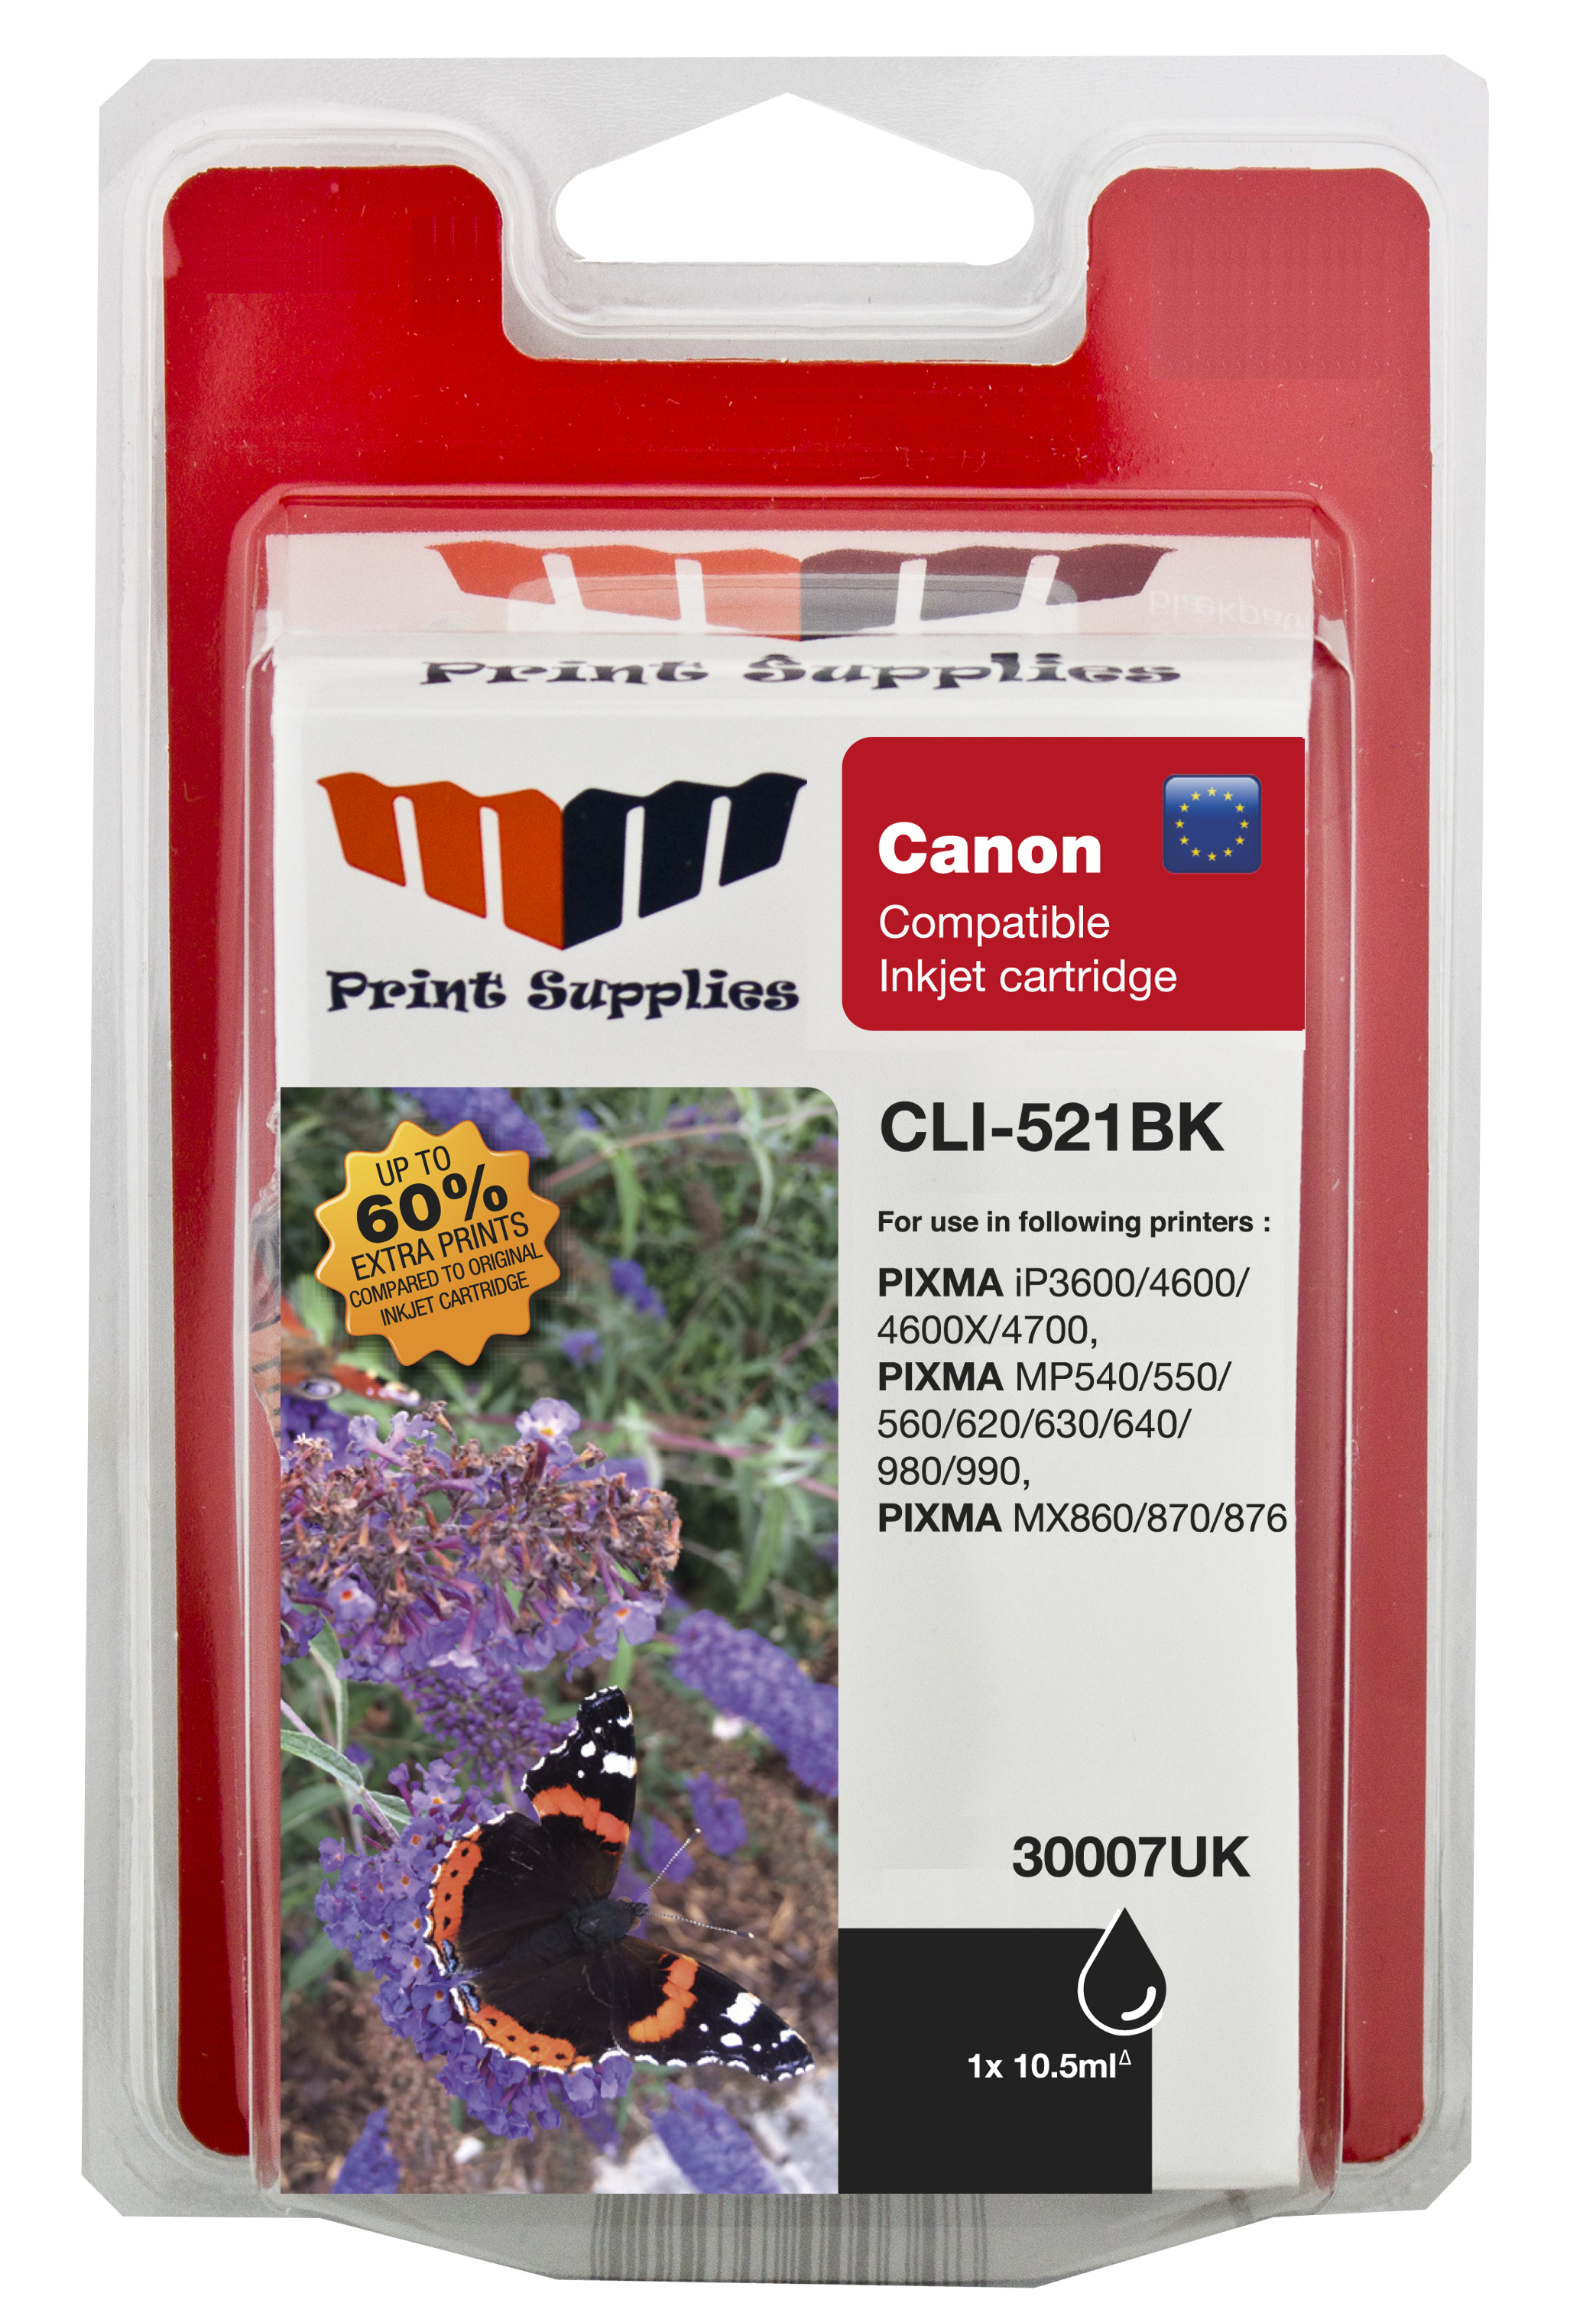 MMPS Black Inkjet Cartridge (CLI-521BK)